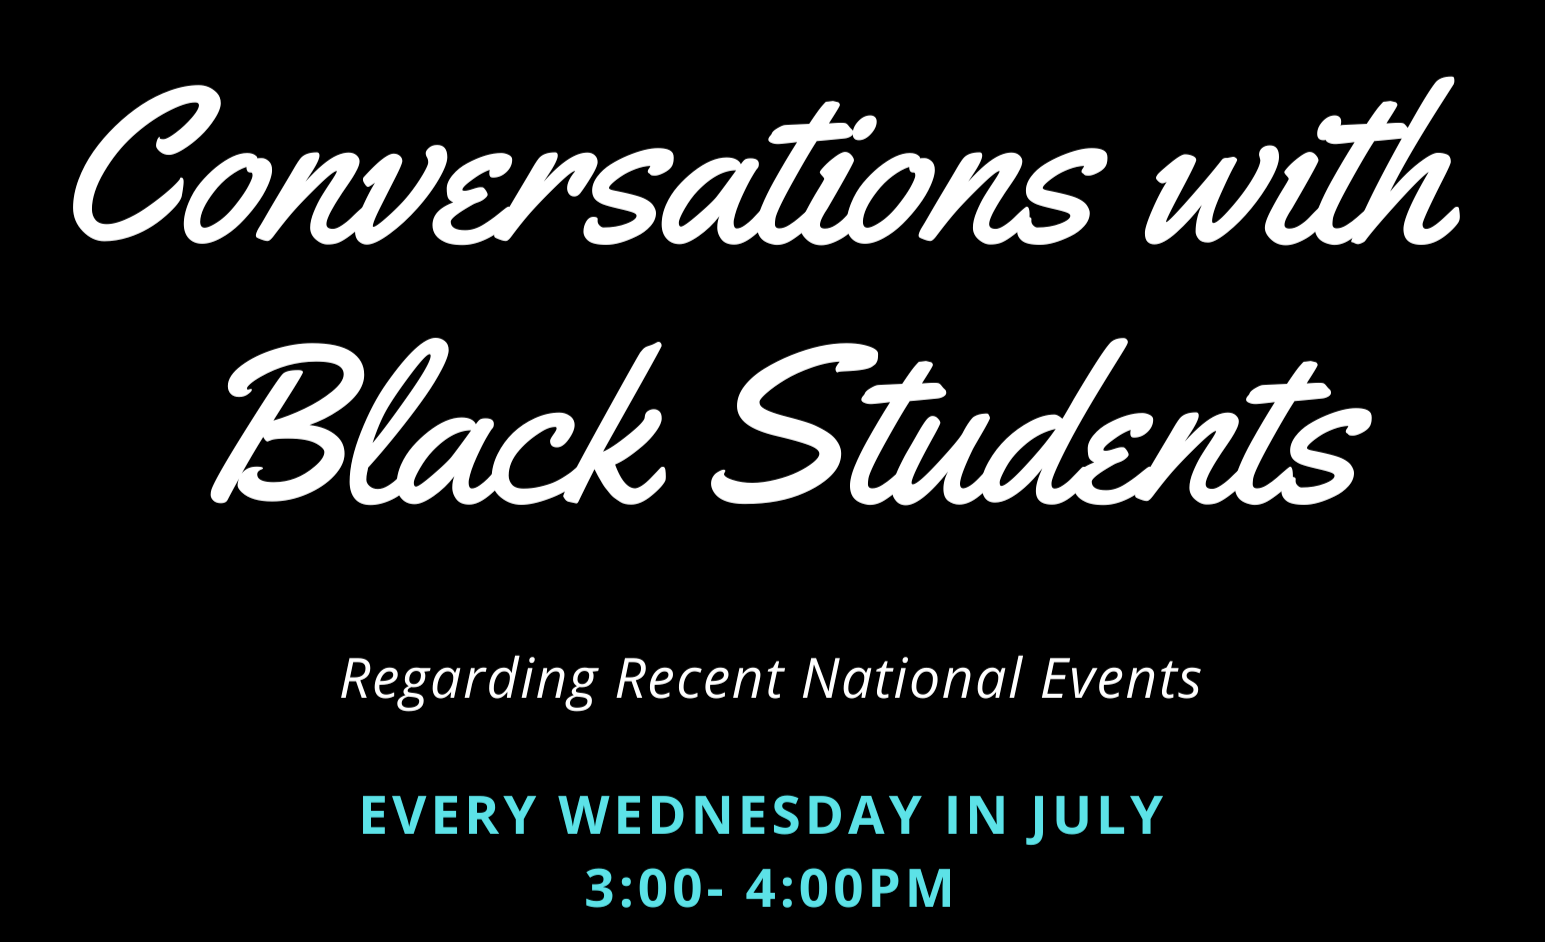 Conversations with Black Students Regarding Recent National Events